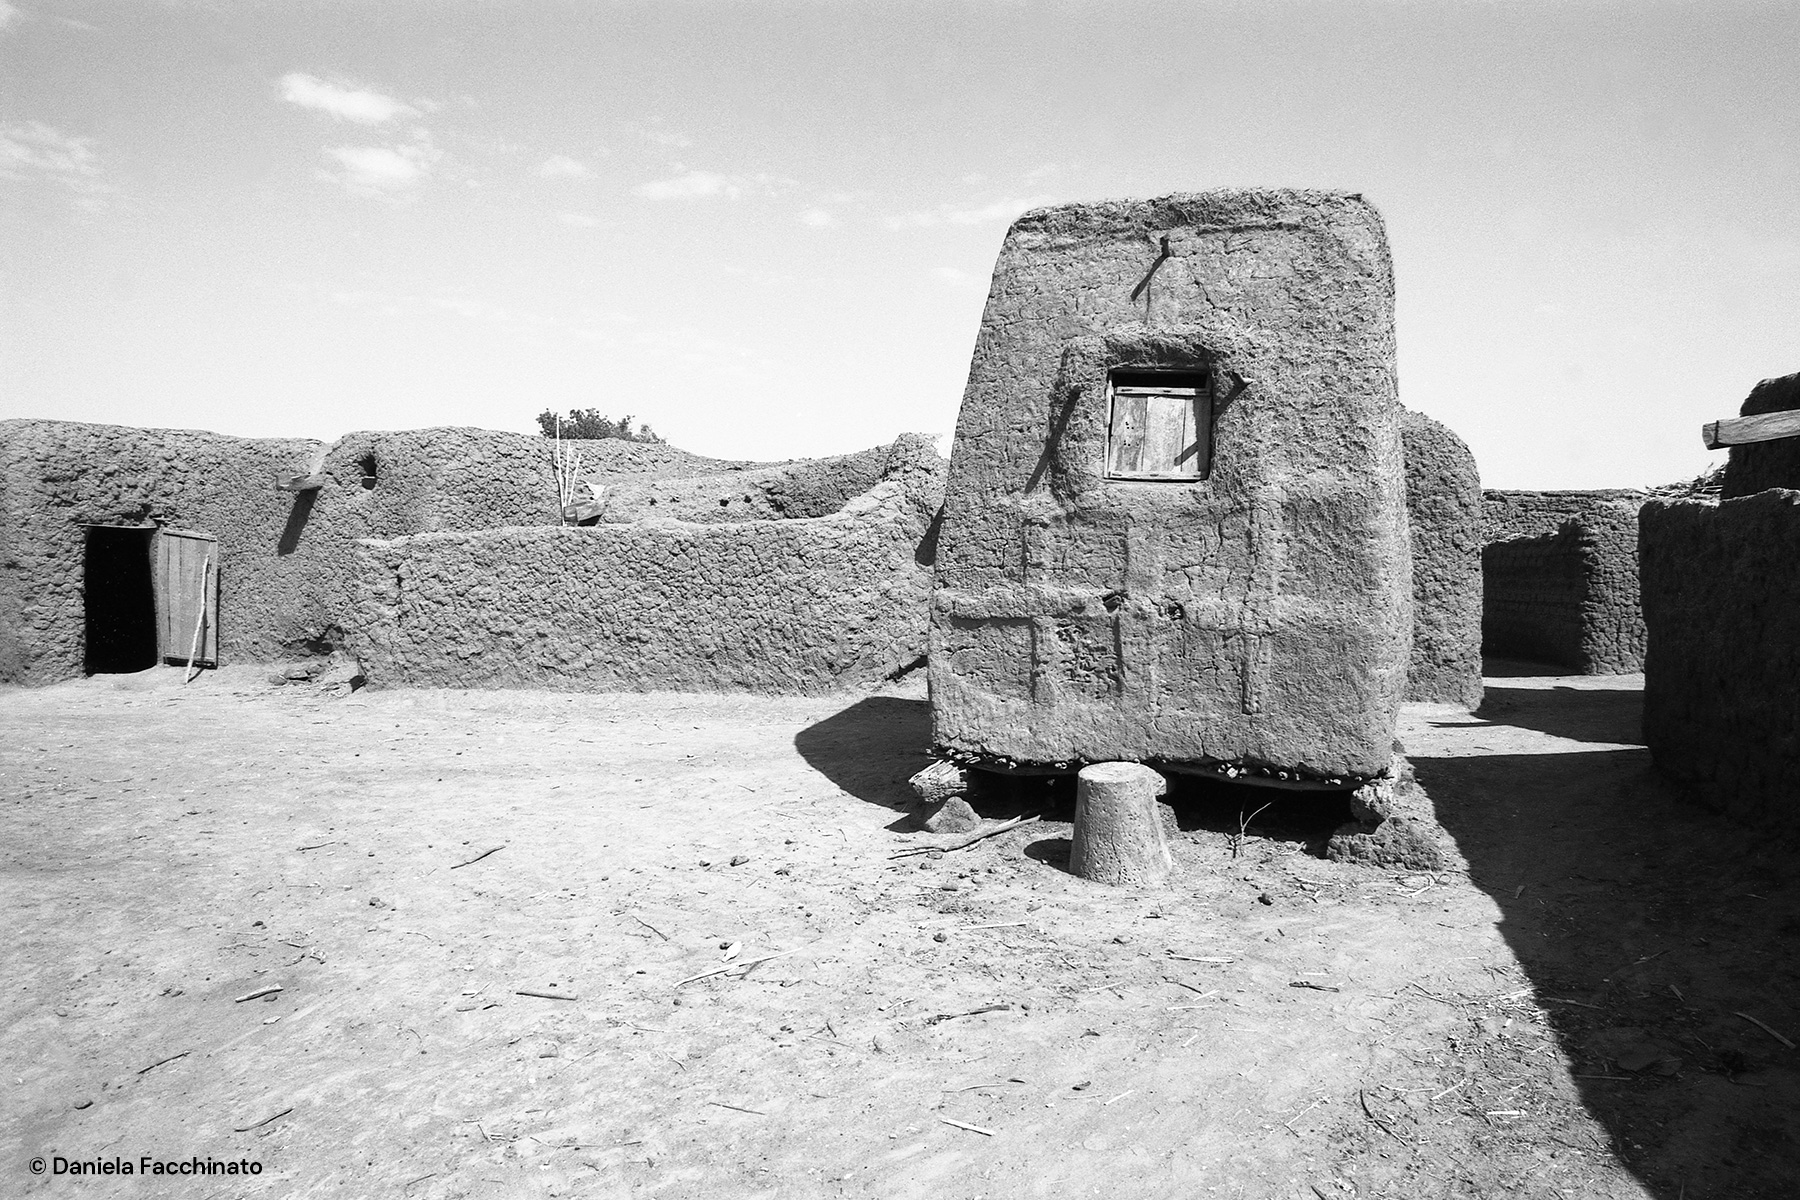 Dogon village of Songo, Mali 1989. Mud granary raised off the ground to preserve millet crops